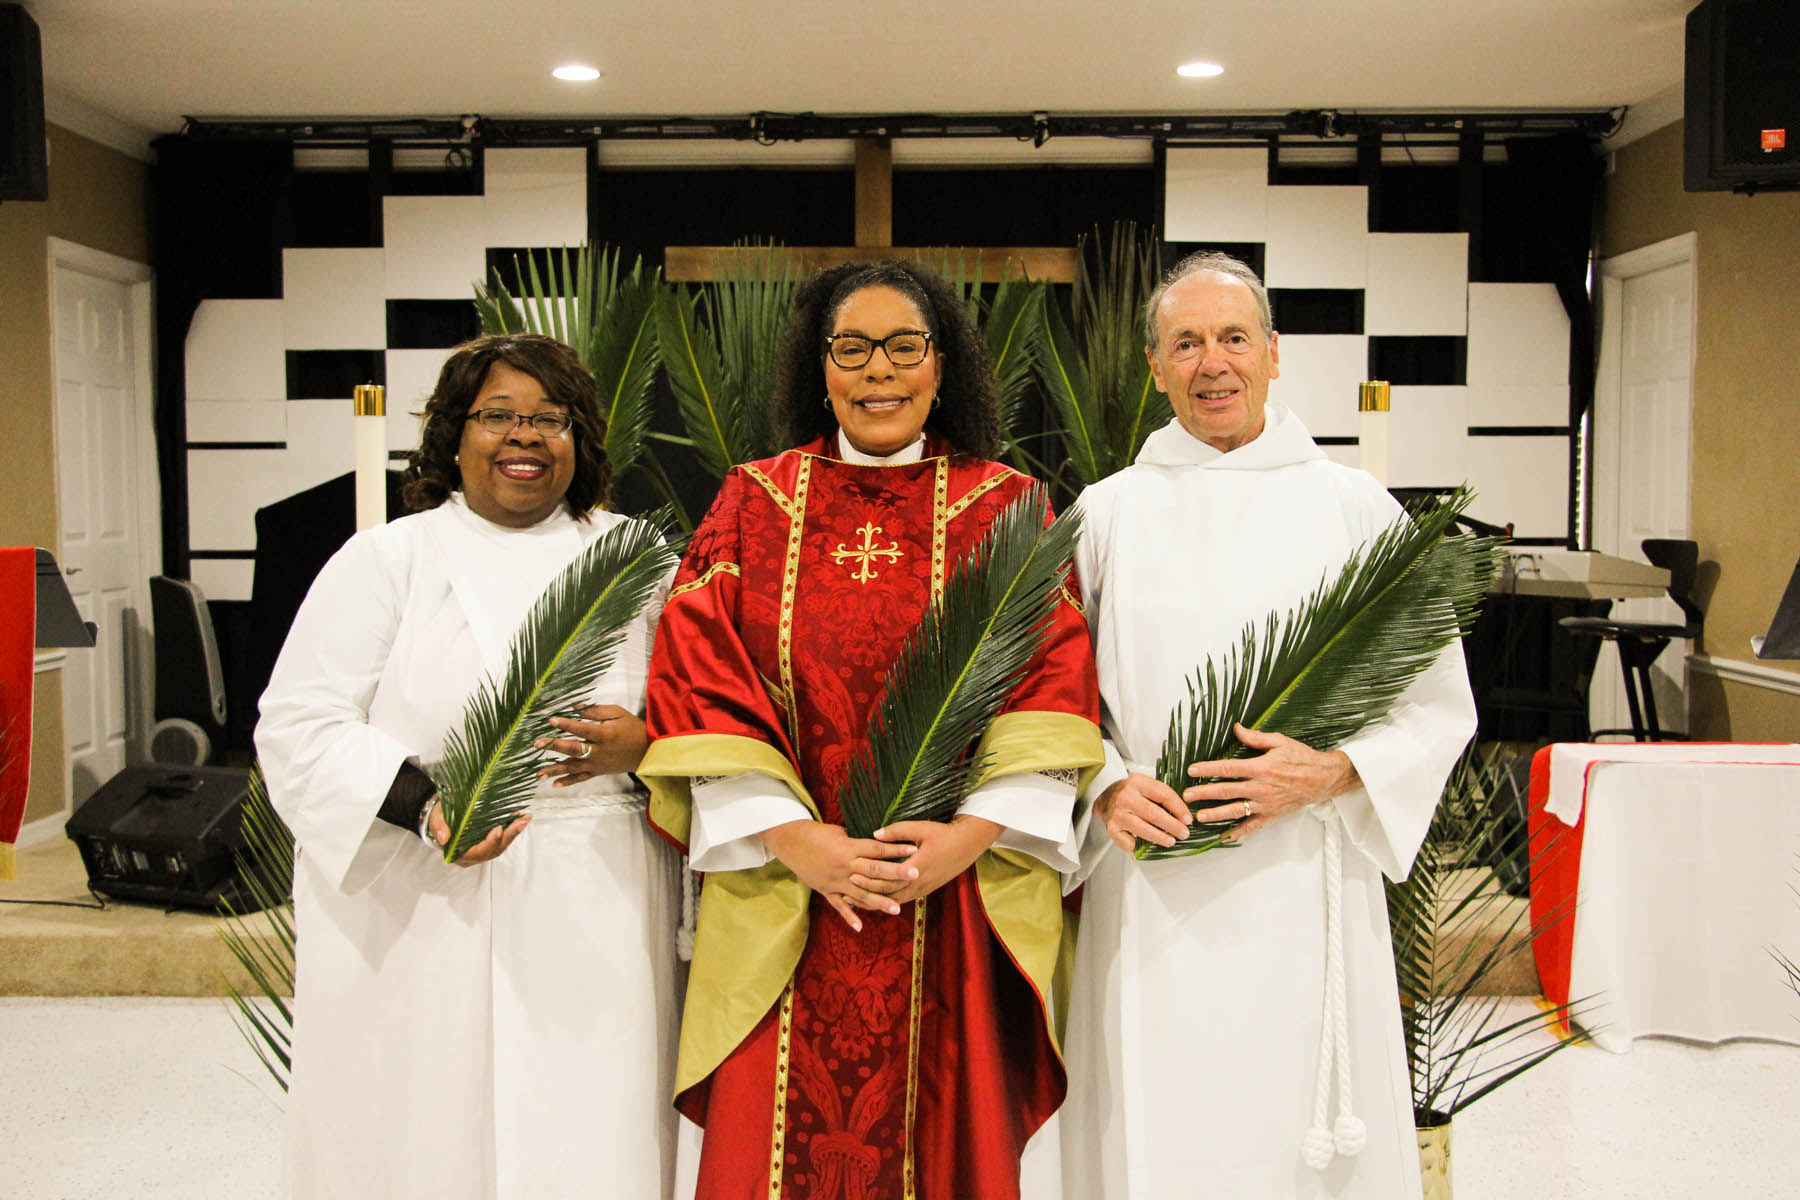 2019-04-14-WCEC-Palm-Sunday-105